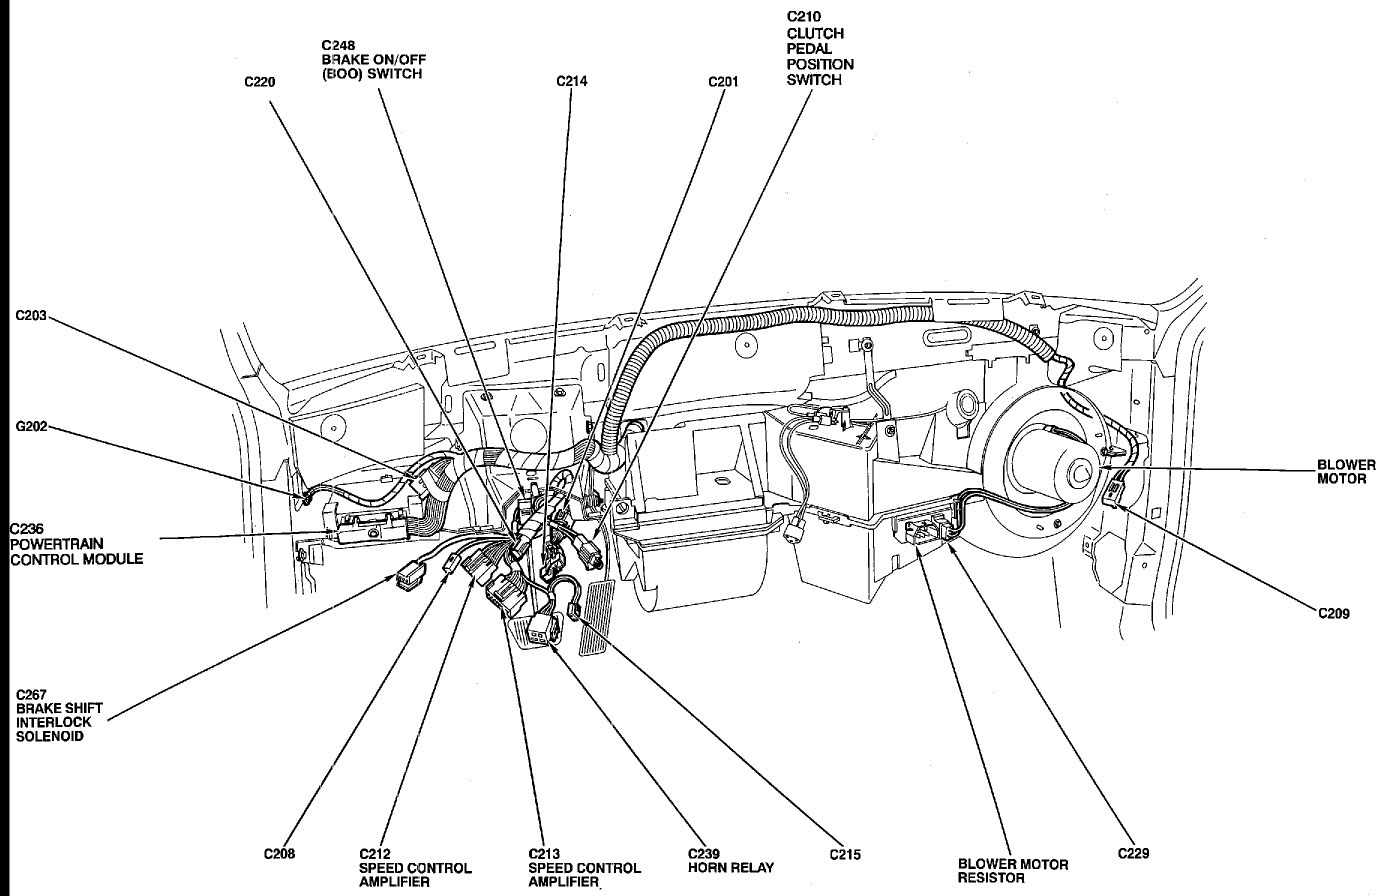 92 ford tempo engine diagram -wiring diagram for staircase | begeboy wiring  diagram source  begeboy wiring diagram source